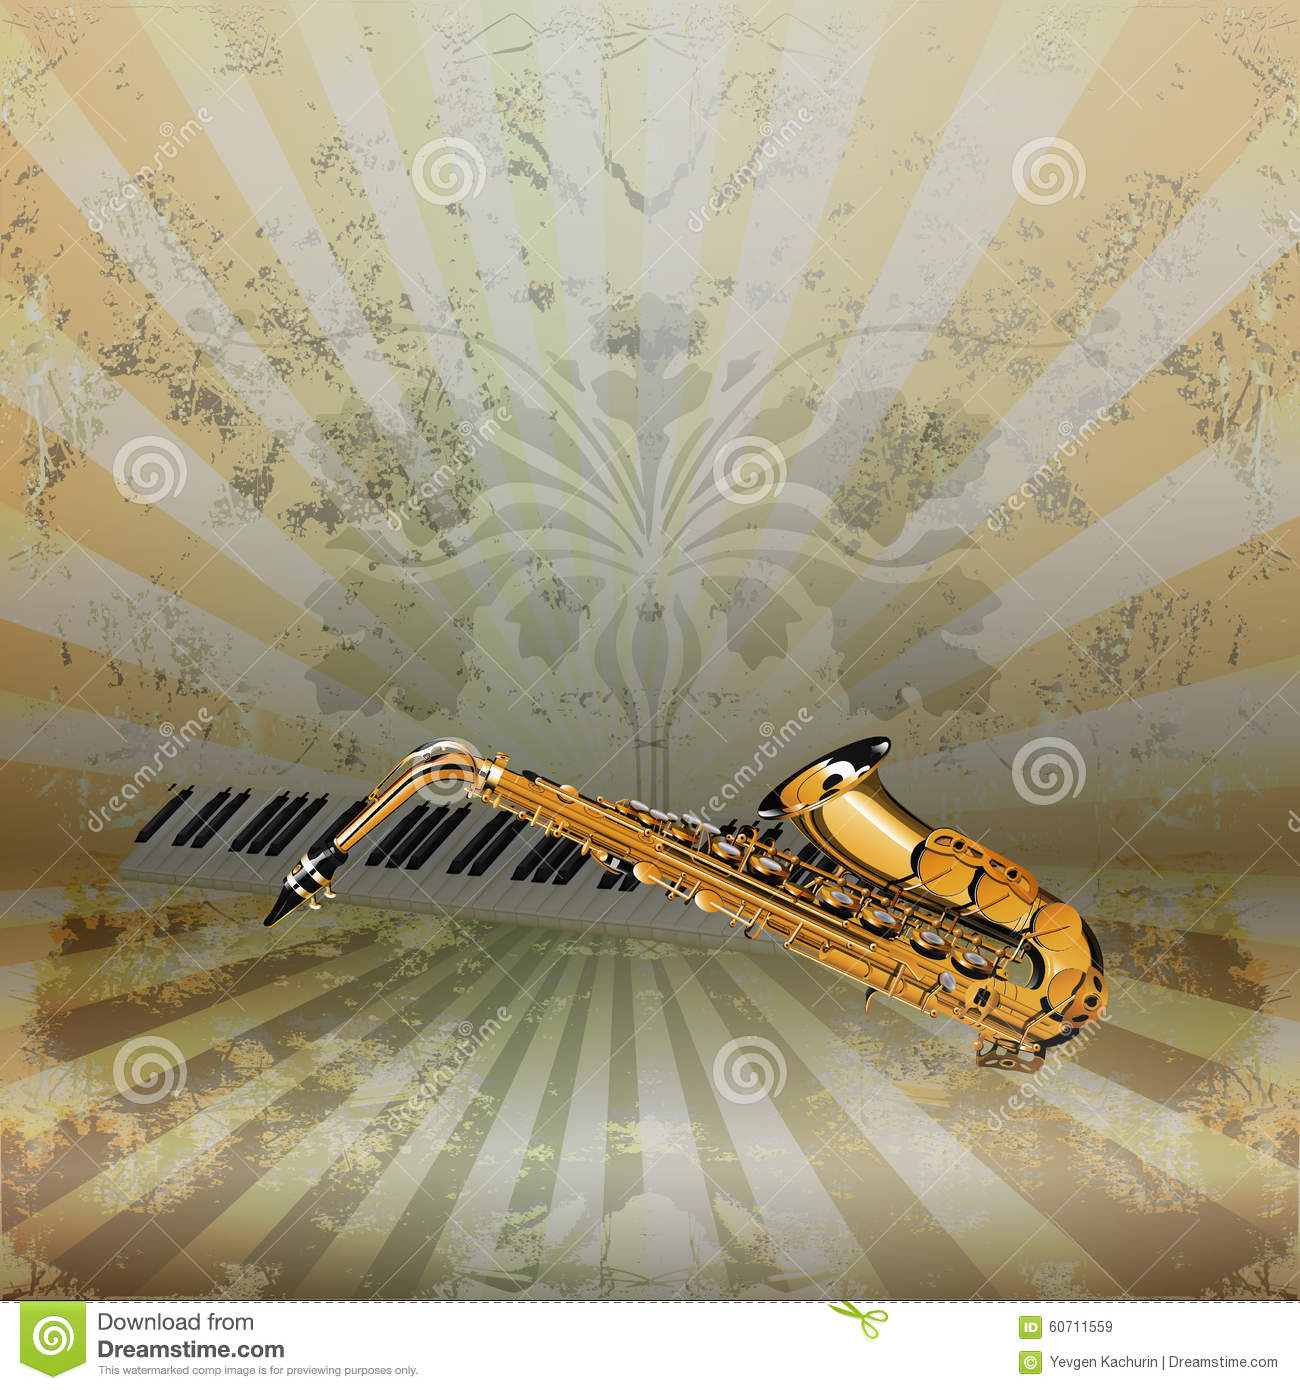 Piano Background Music: Background Music Jazz Saxophone And Piano Keys Stock